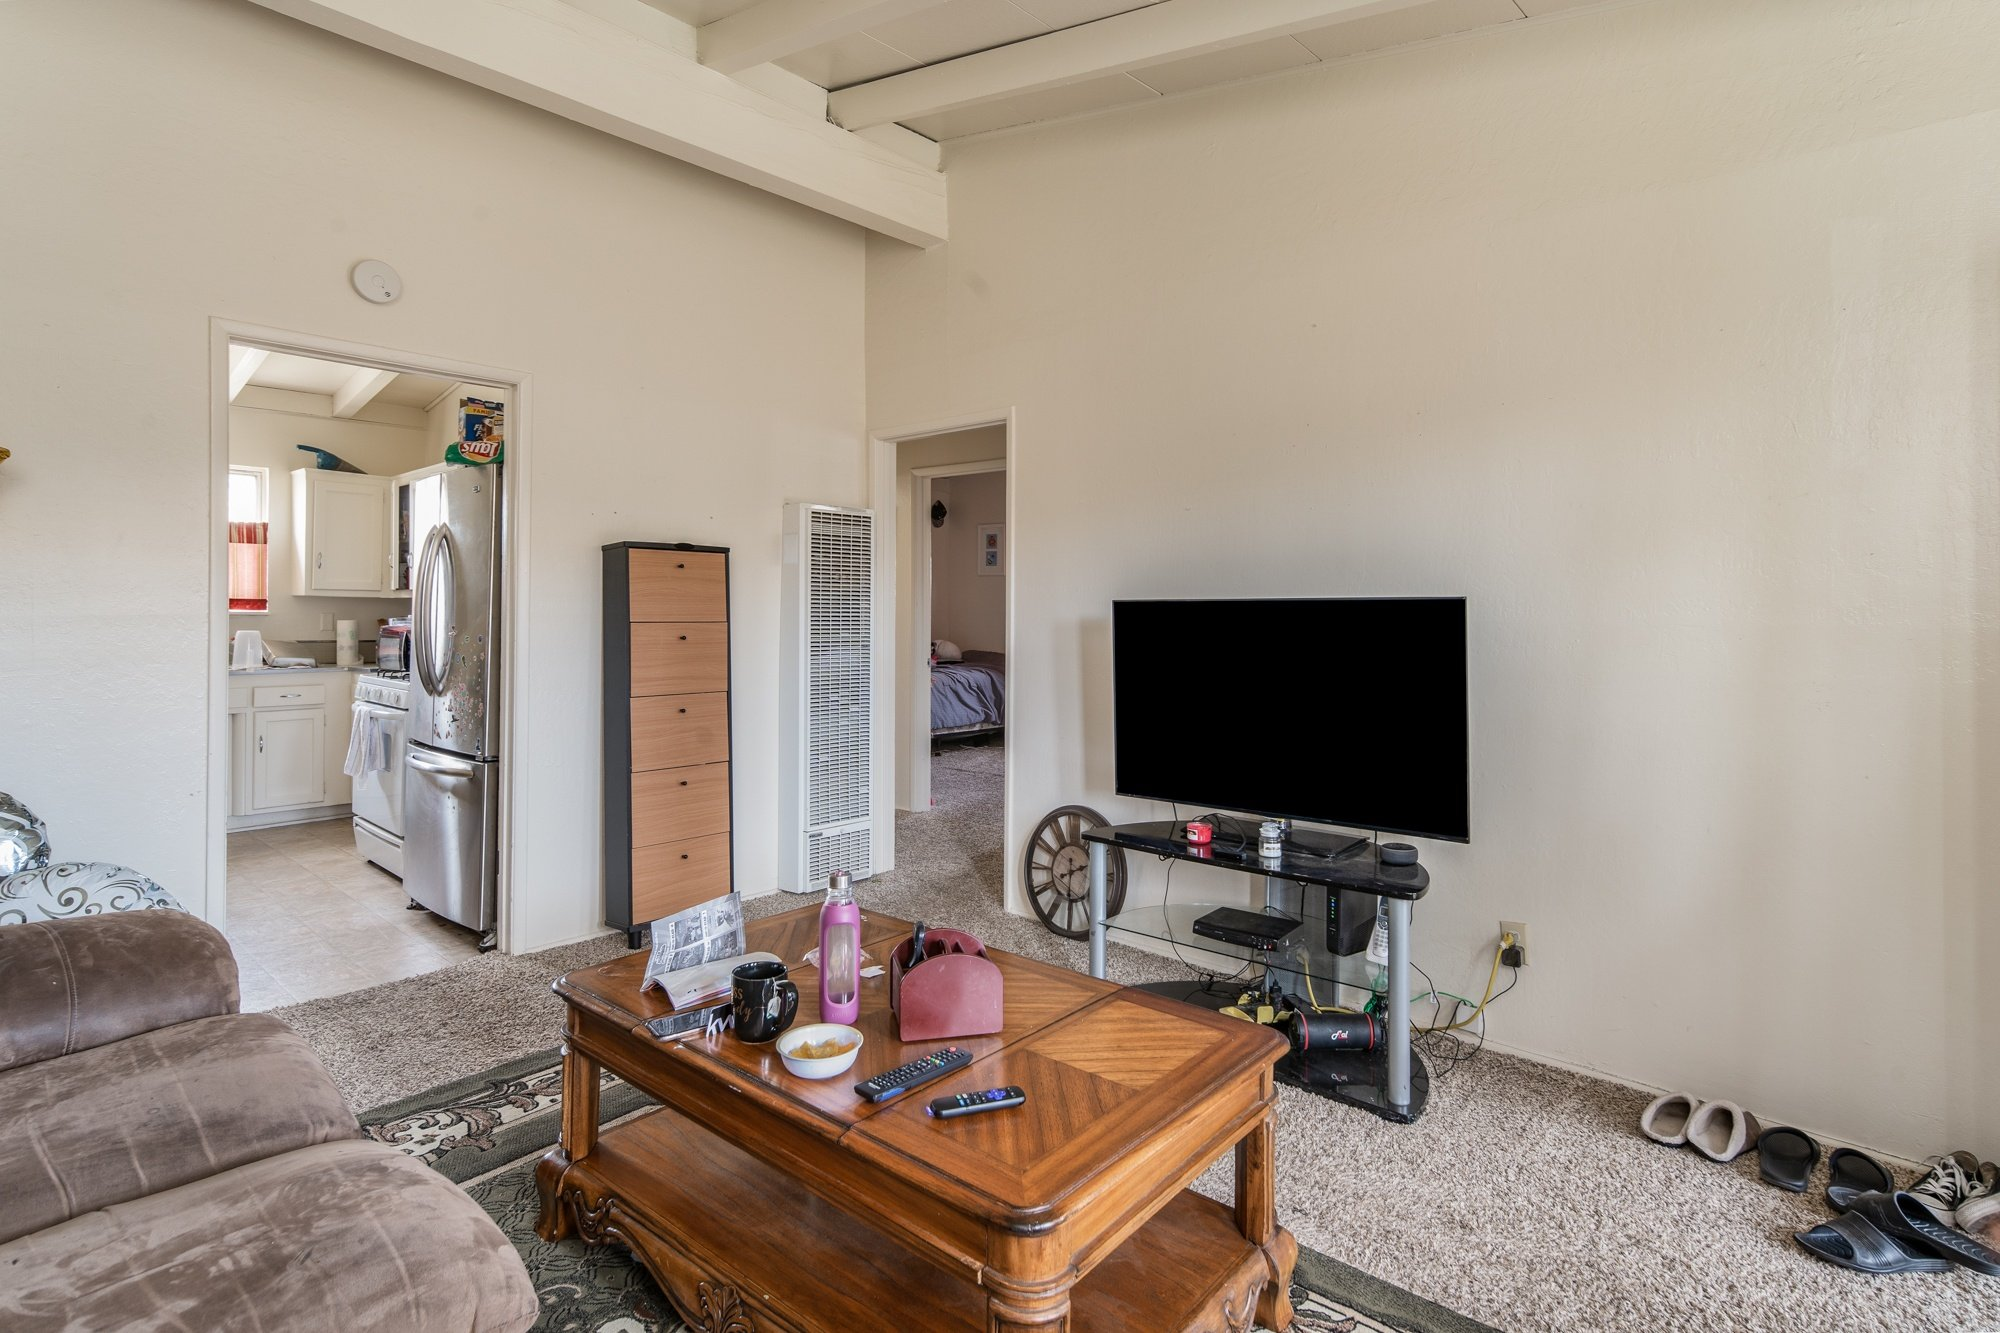 Palmdale, CA best real estate agent 557 - 559 West Avenue H 8, Lancaster, CA 93534 (living room 5)